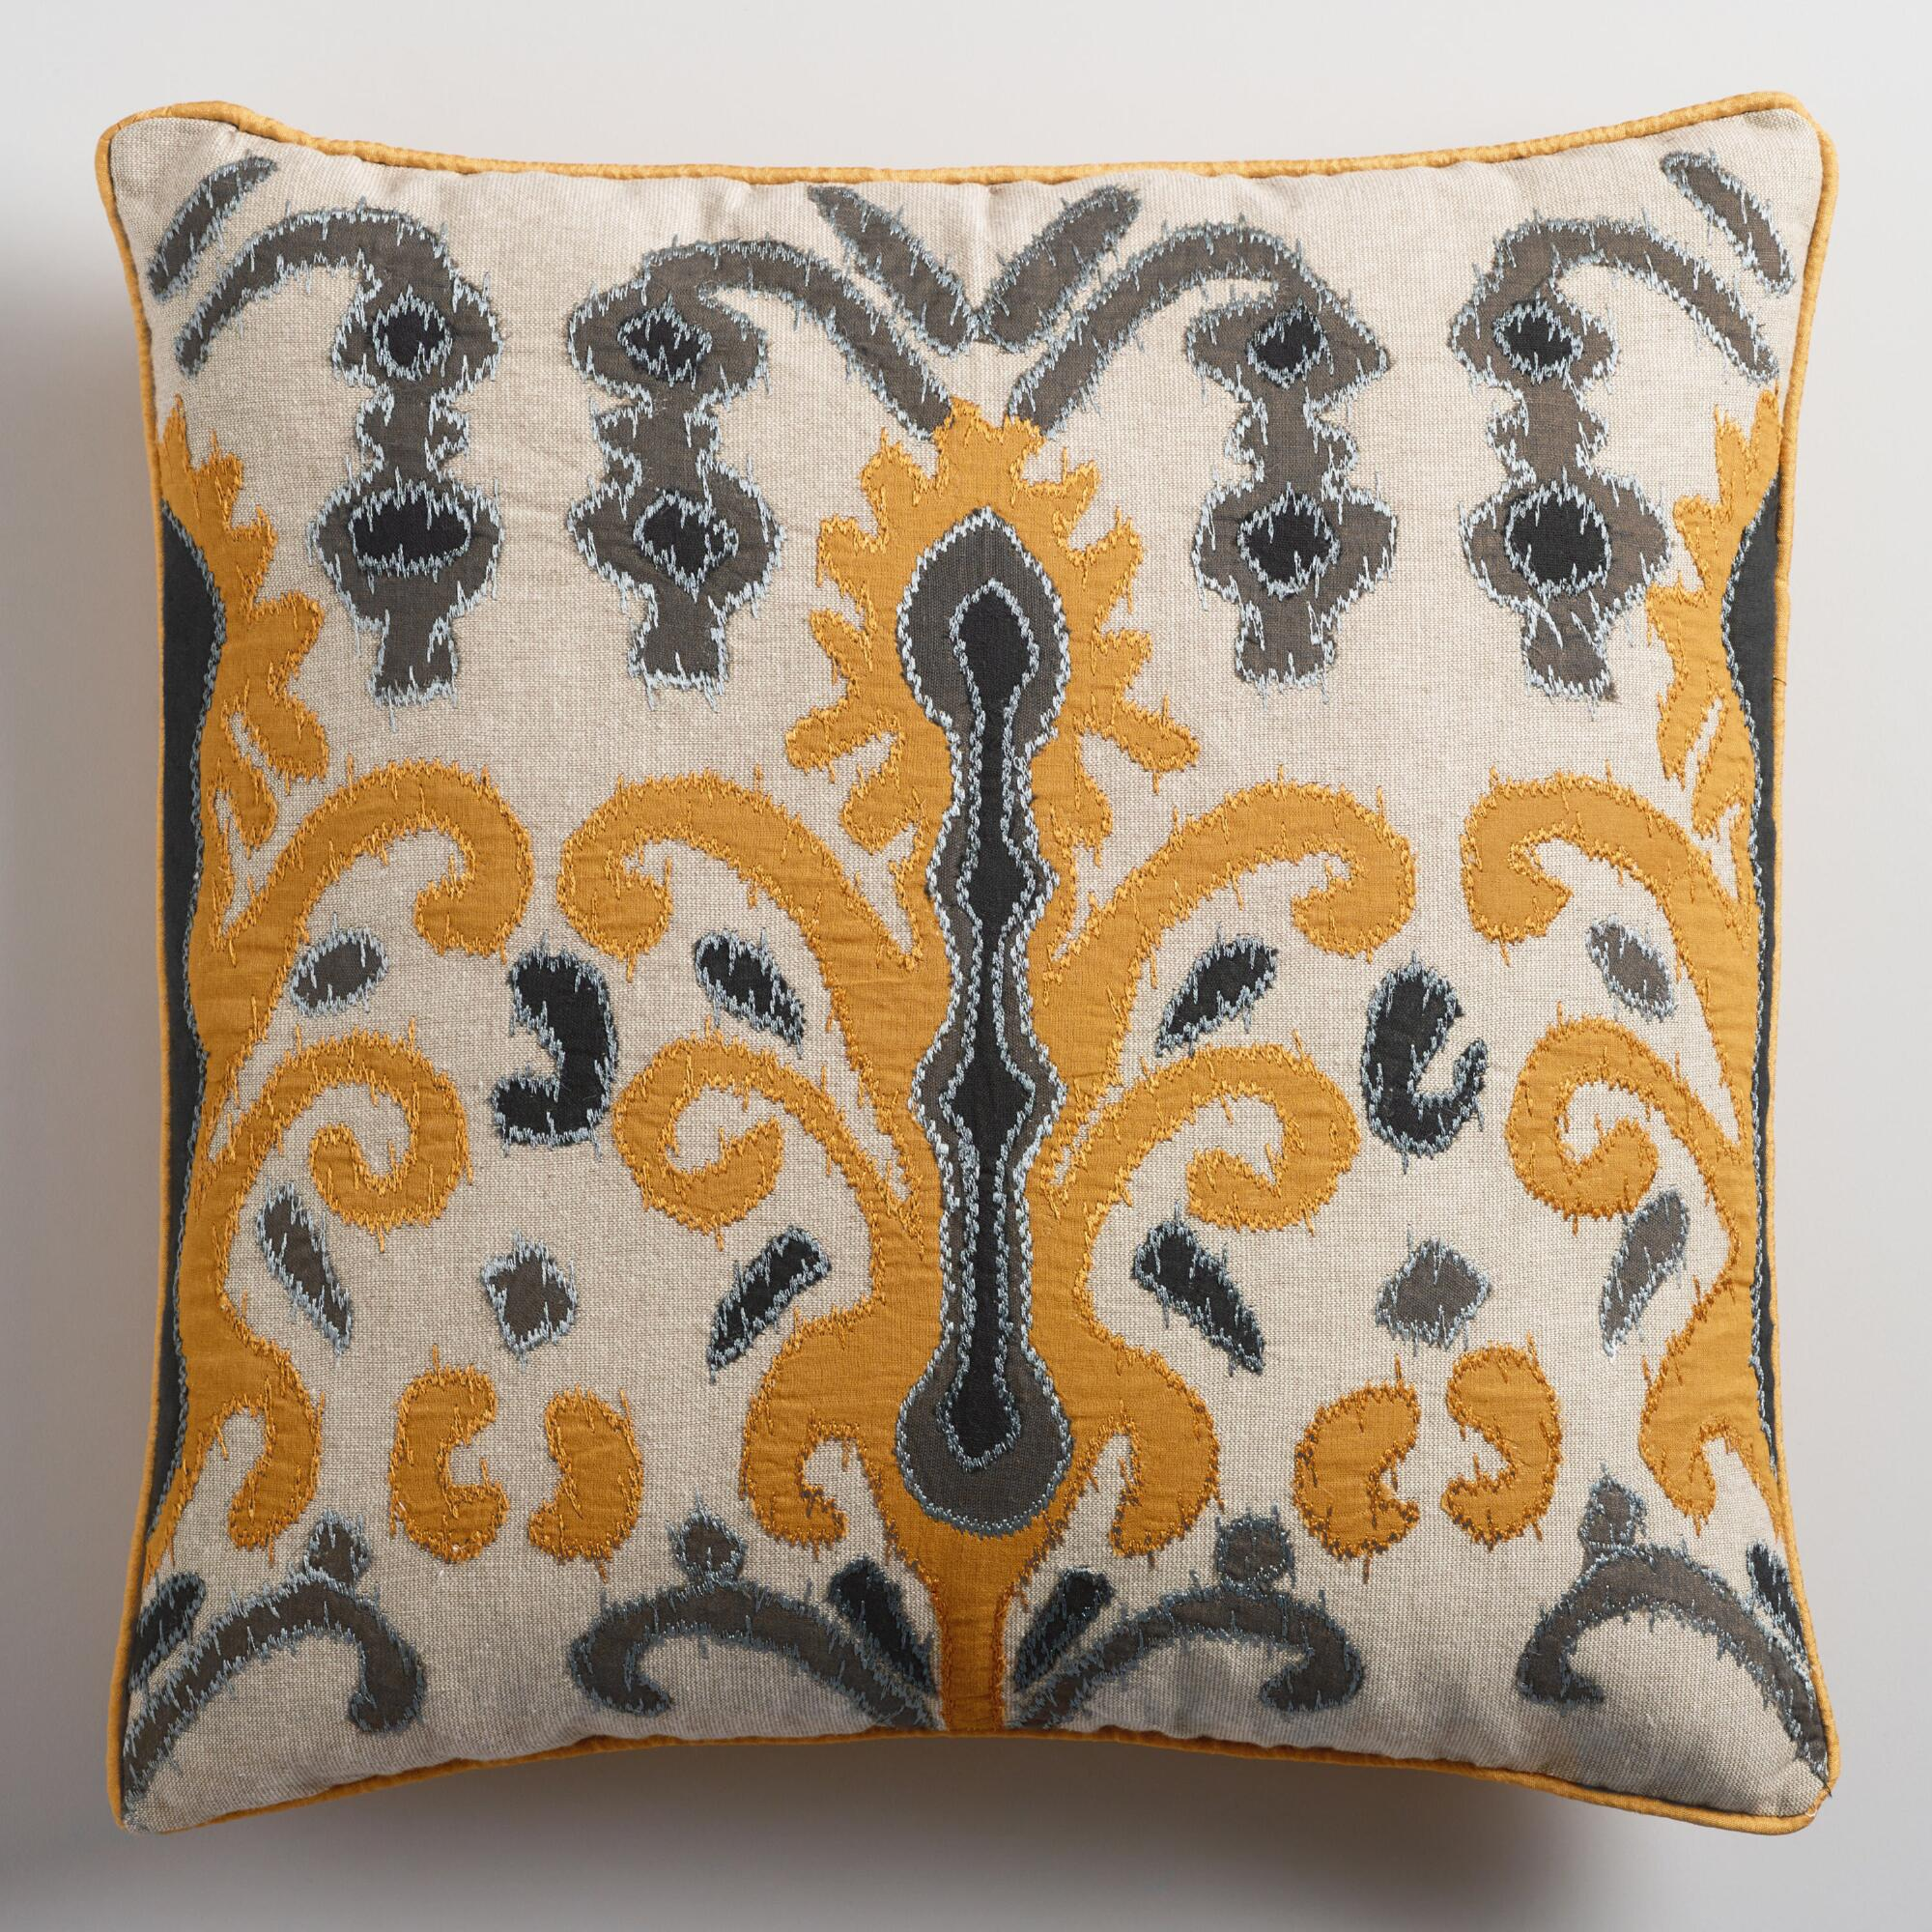 Throw Pillows Gif : Gold and Gray Applique Ikat Throw Pillow World Market